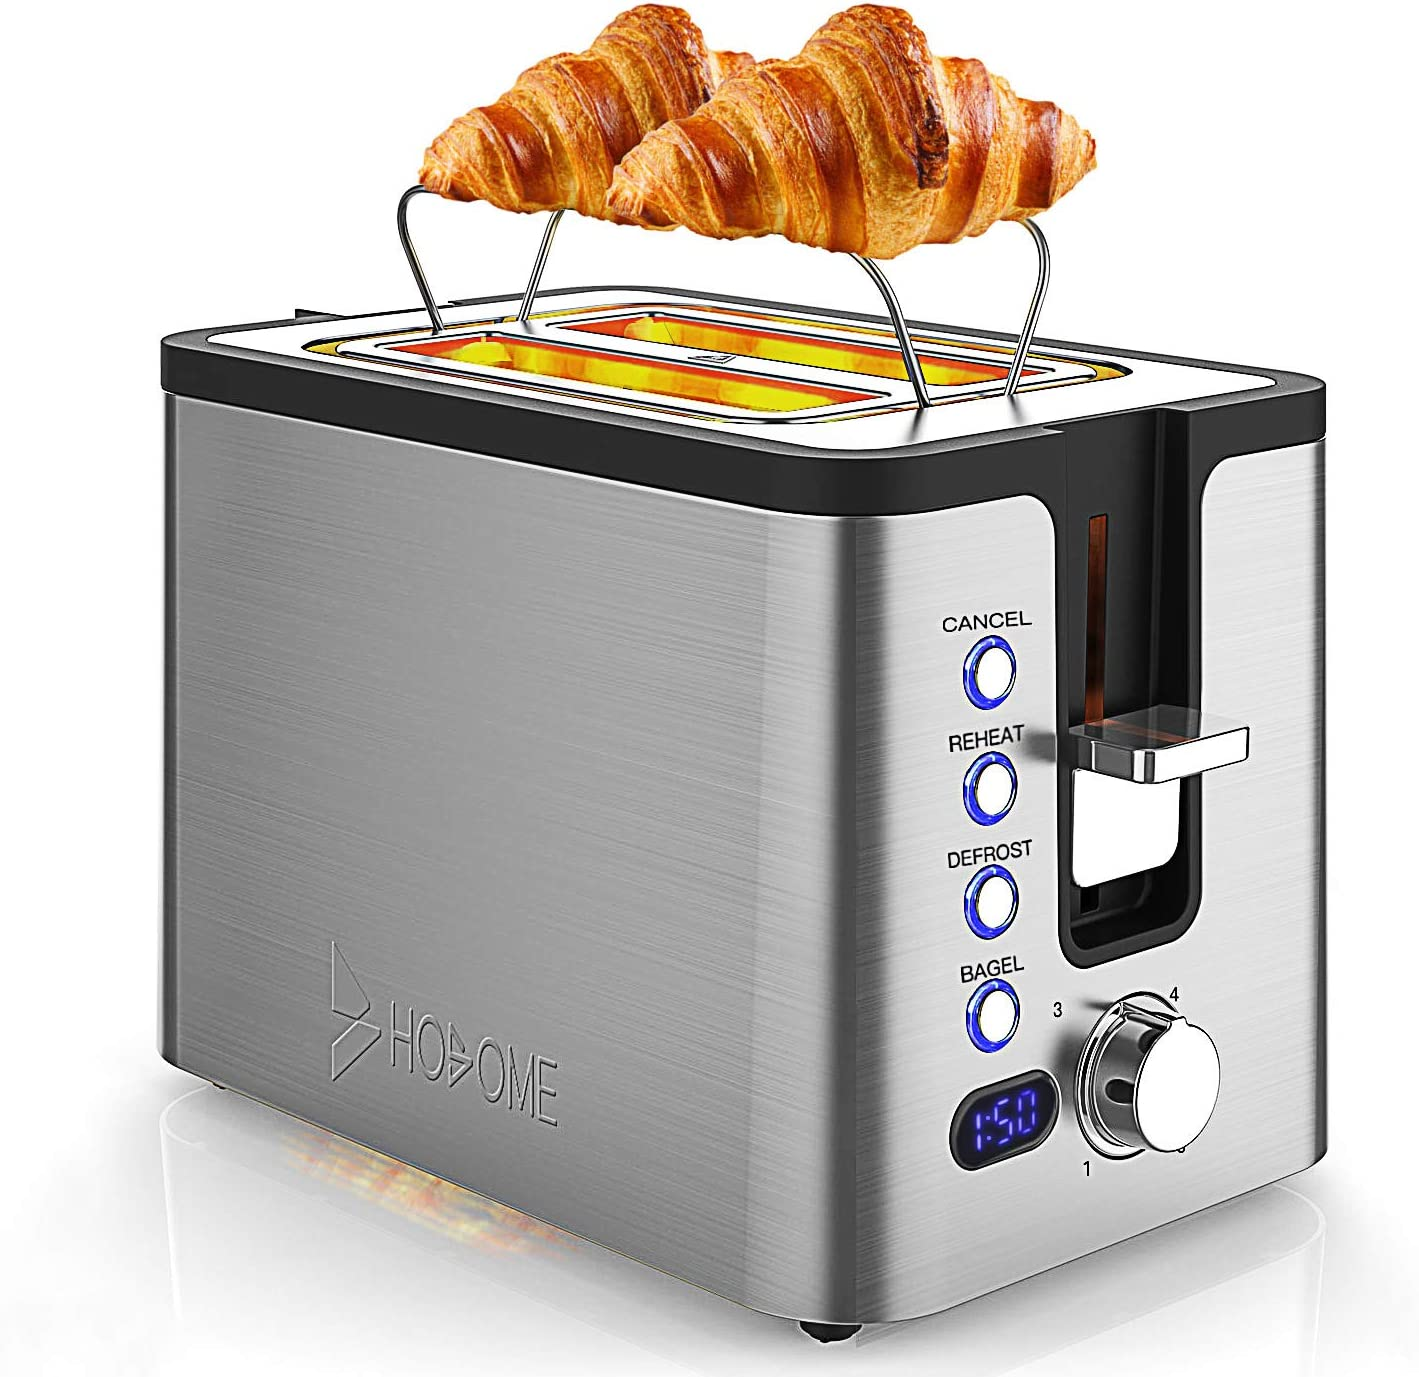 2 Slice Toaster, Hosome Stainless Steel Bread Bagel Toaster Extra Wide Slots Toasters with Warming Rack, 6 Shade Settings, LED Display, Removable Crumb Tray, Bagel Defrost Reheat Cancel Function, 800W